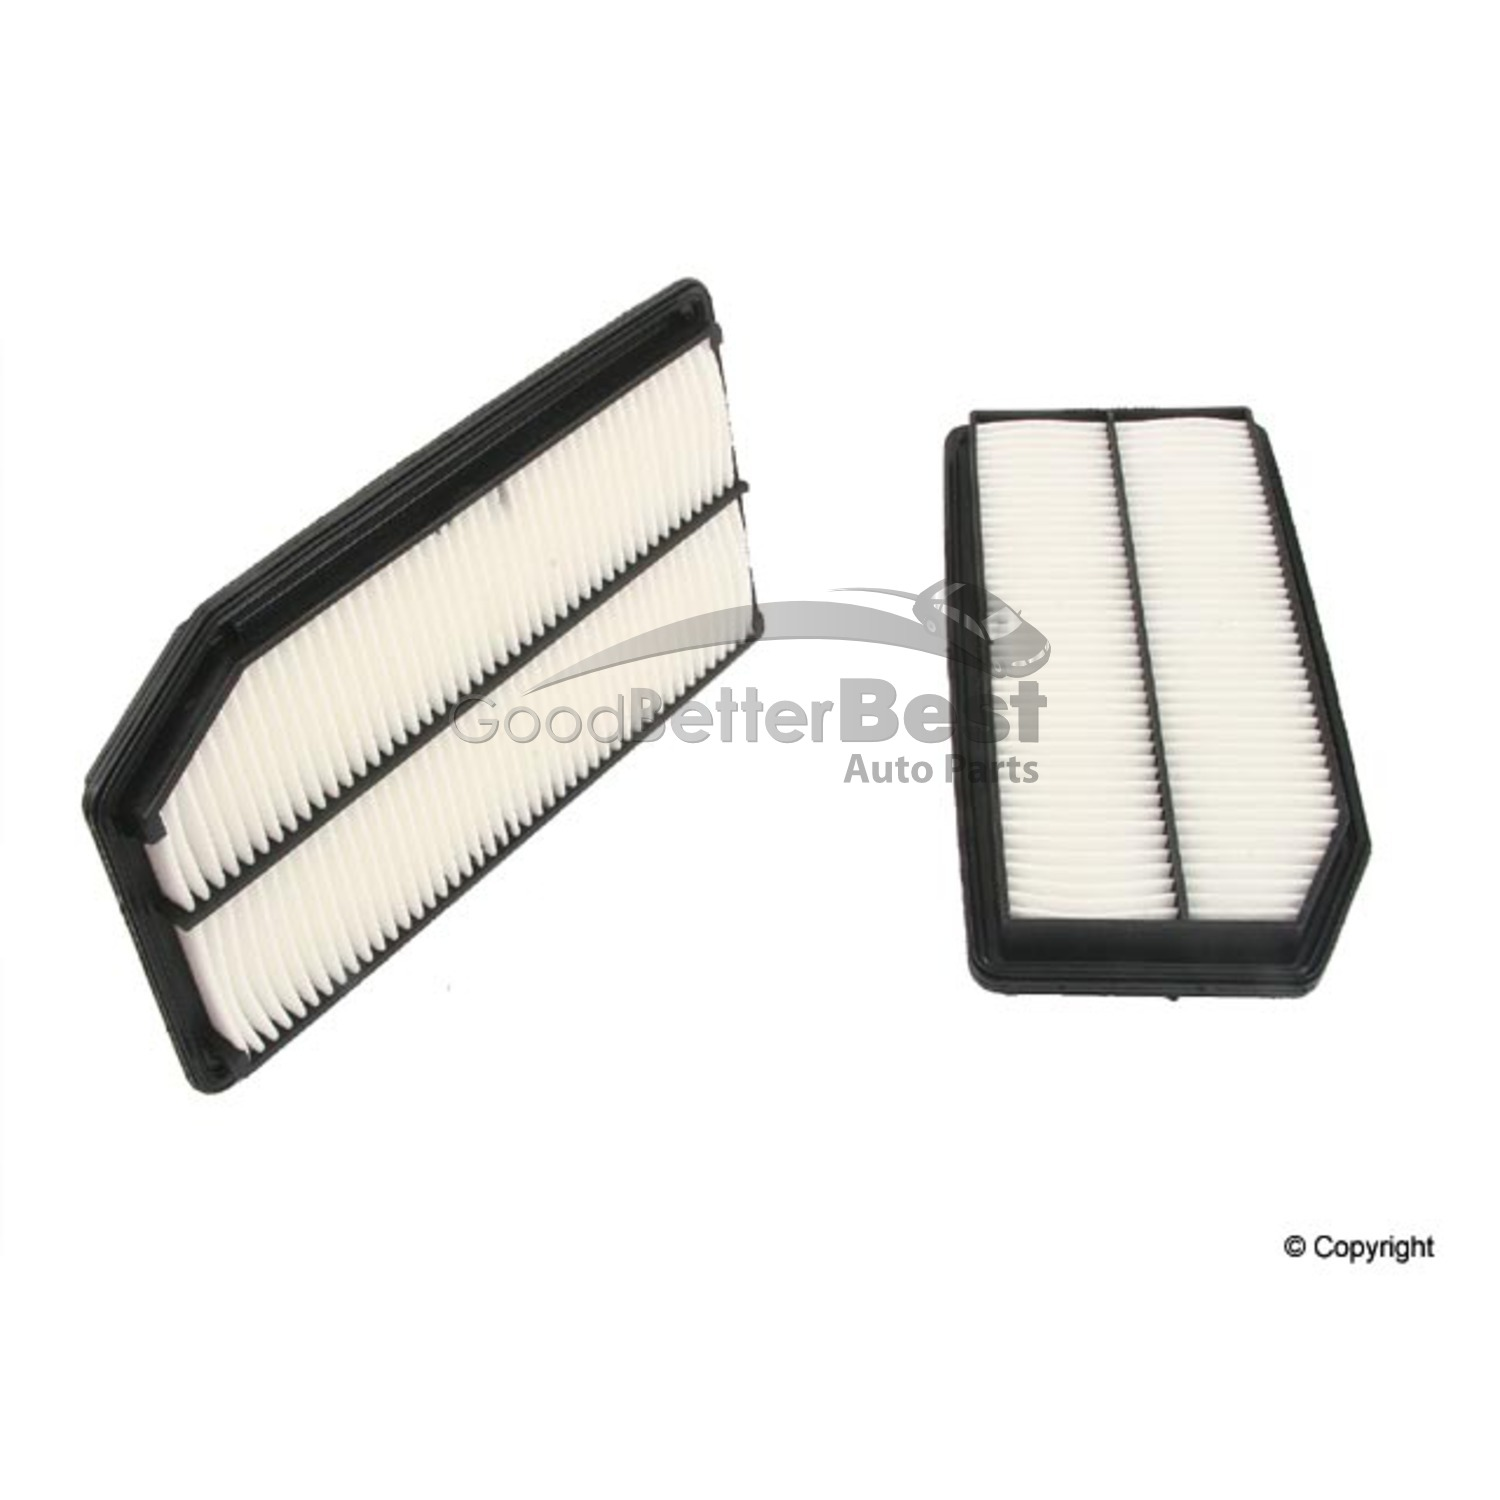 hight resolution of details about one new genuine air filter 17220rjea10 for honda ridgeline